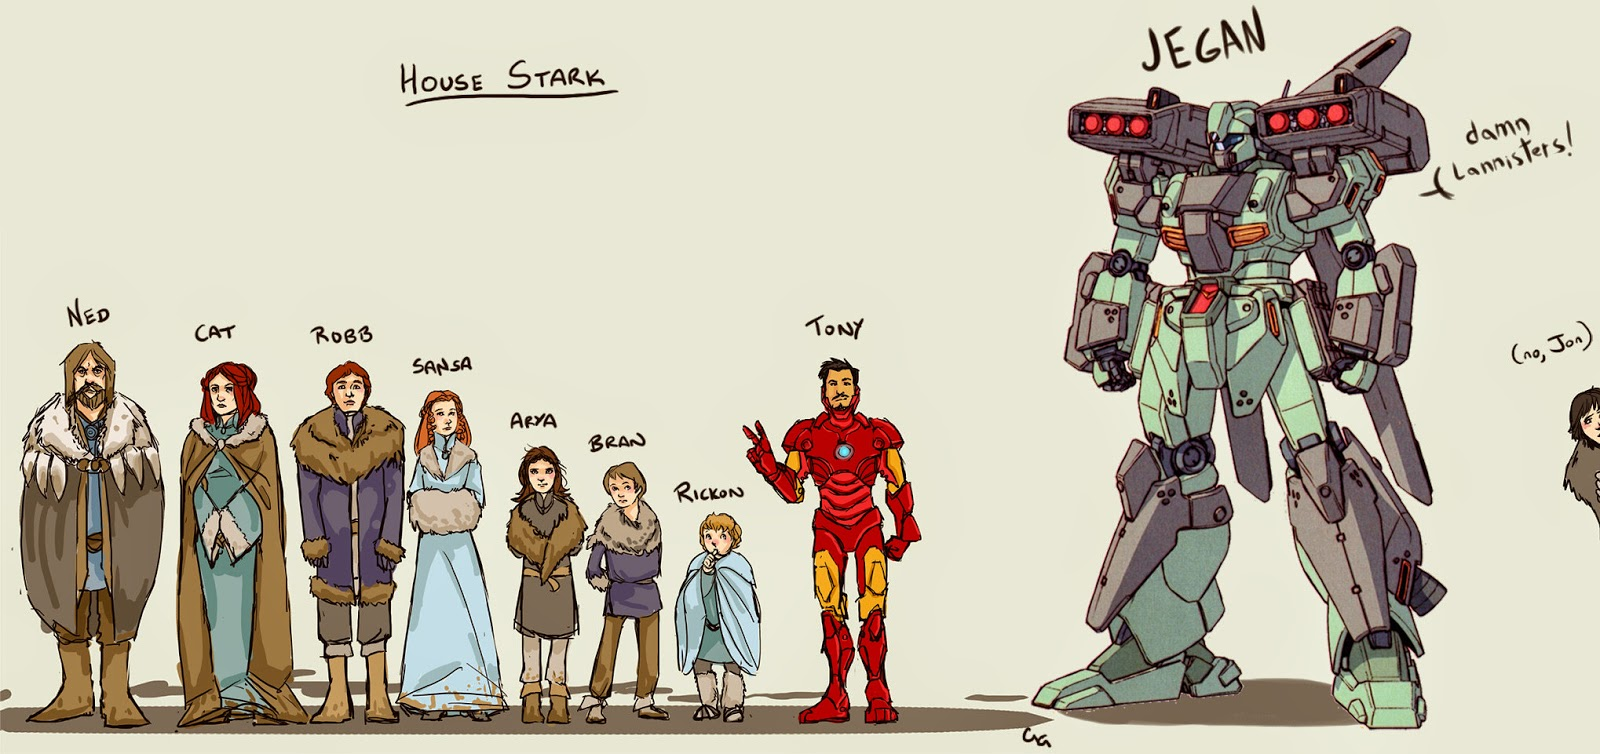 Fanart Game Of Thrones House Stark With Tony Stark And